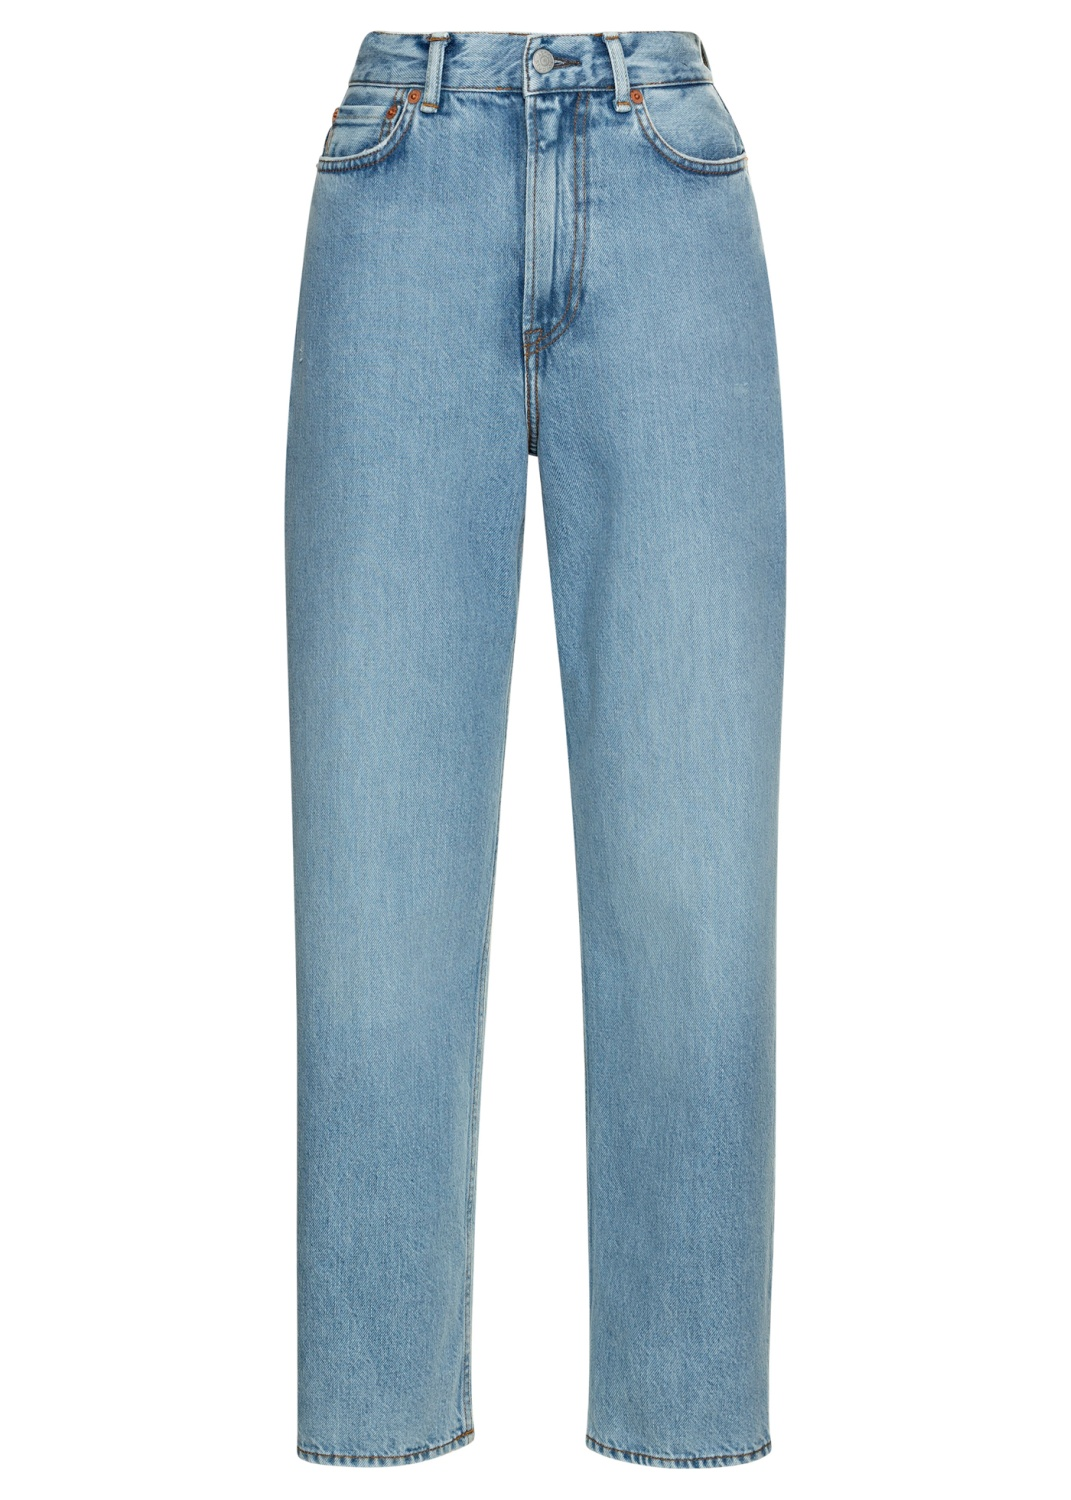 ACNE STUDIOS 1993 SUMMER BLUE image number 0